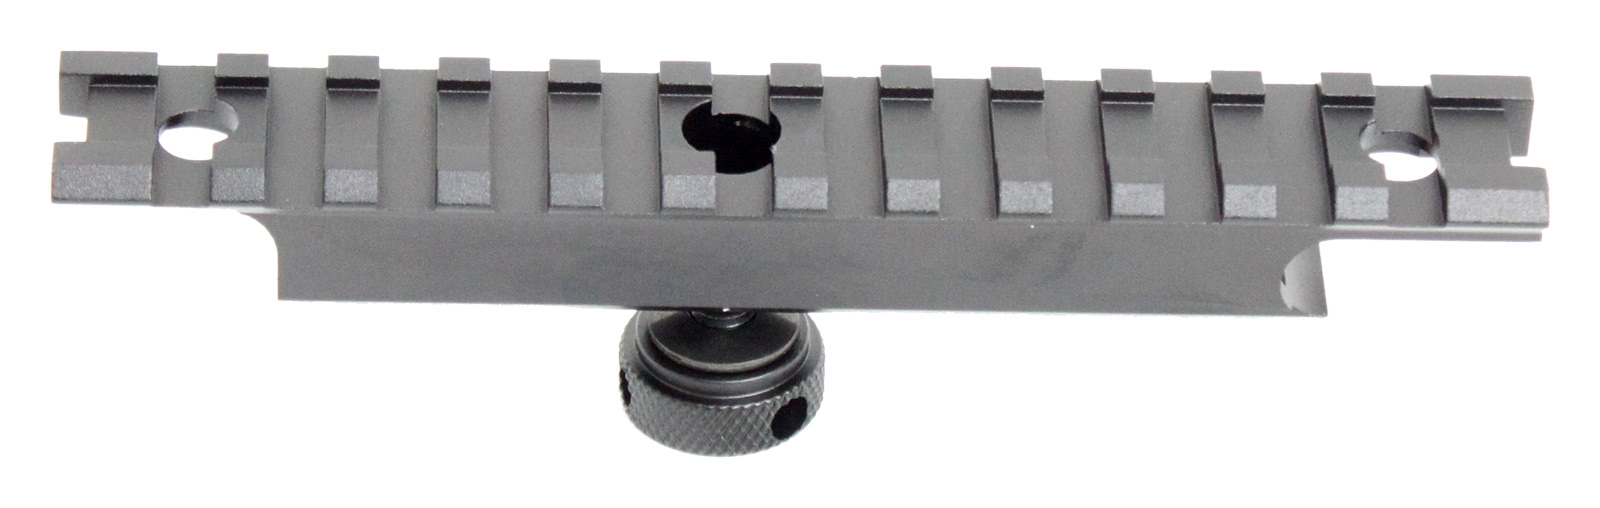 ar15-carry-handle-rail-mount-12-slots-120536